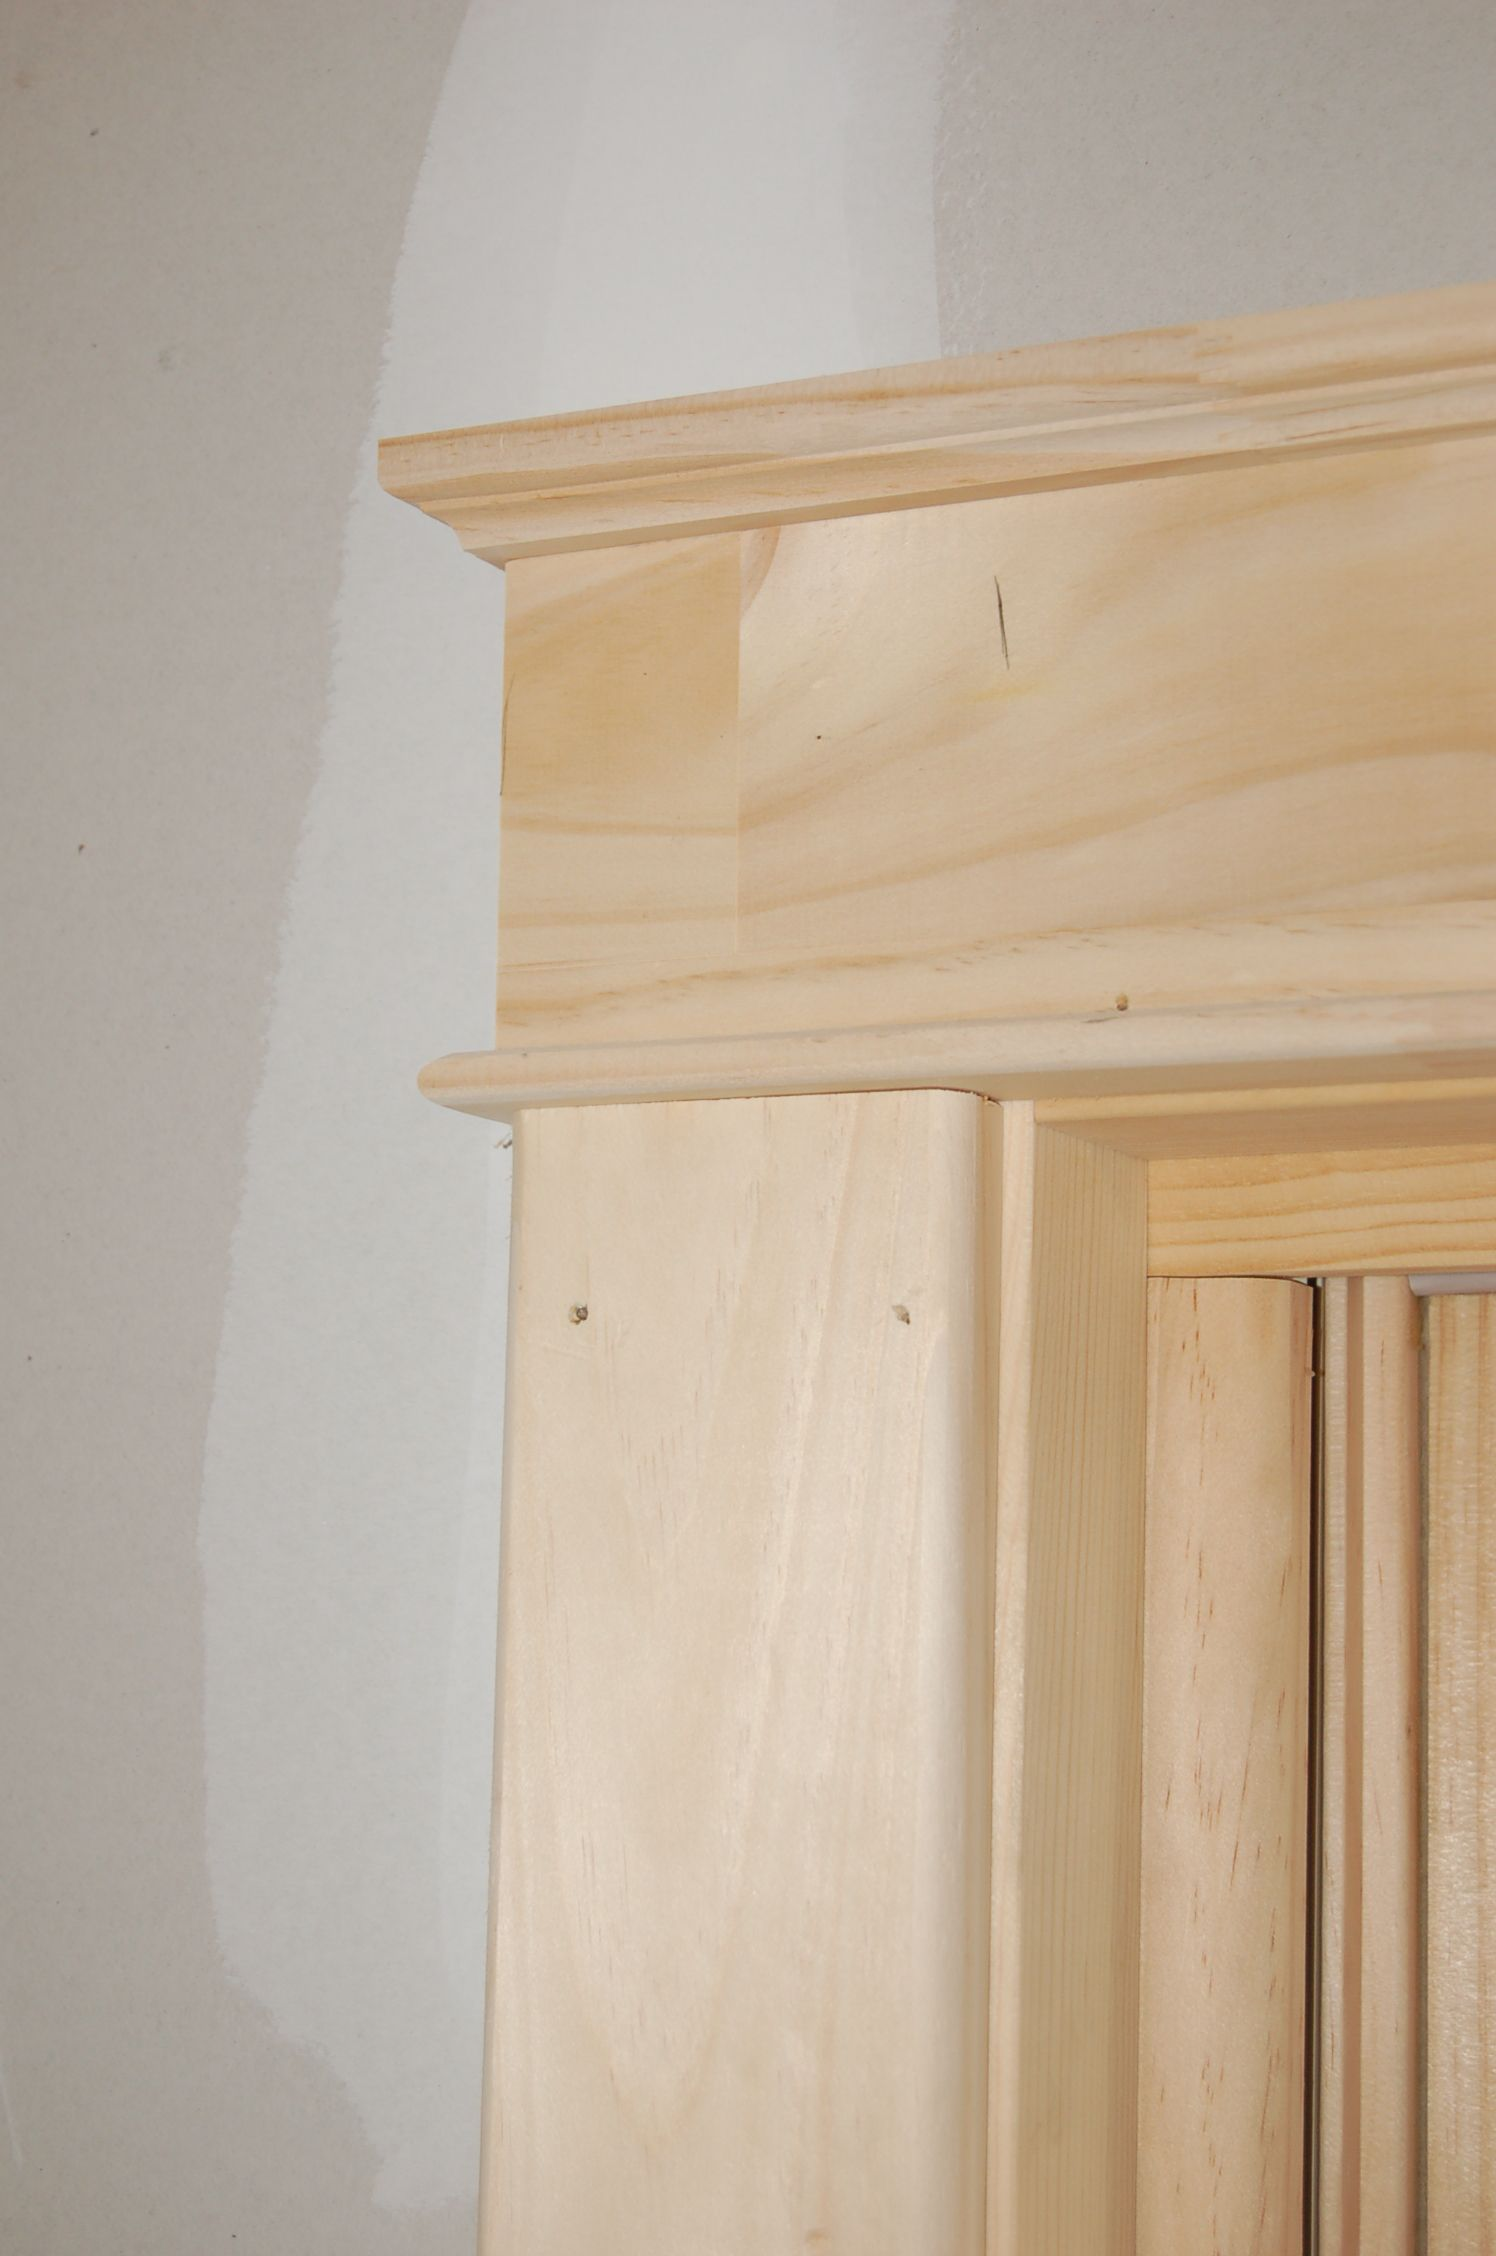 Doorway molding gallery of how to install a bifold closet for Over door decorative molding